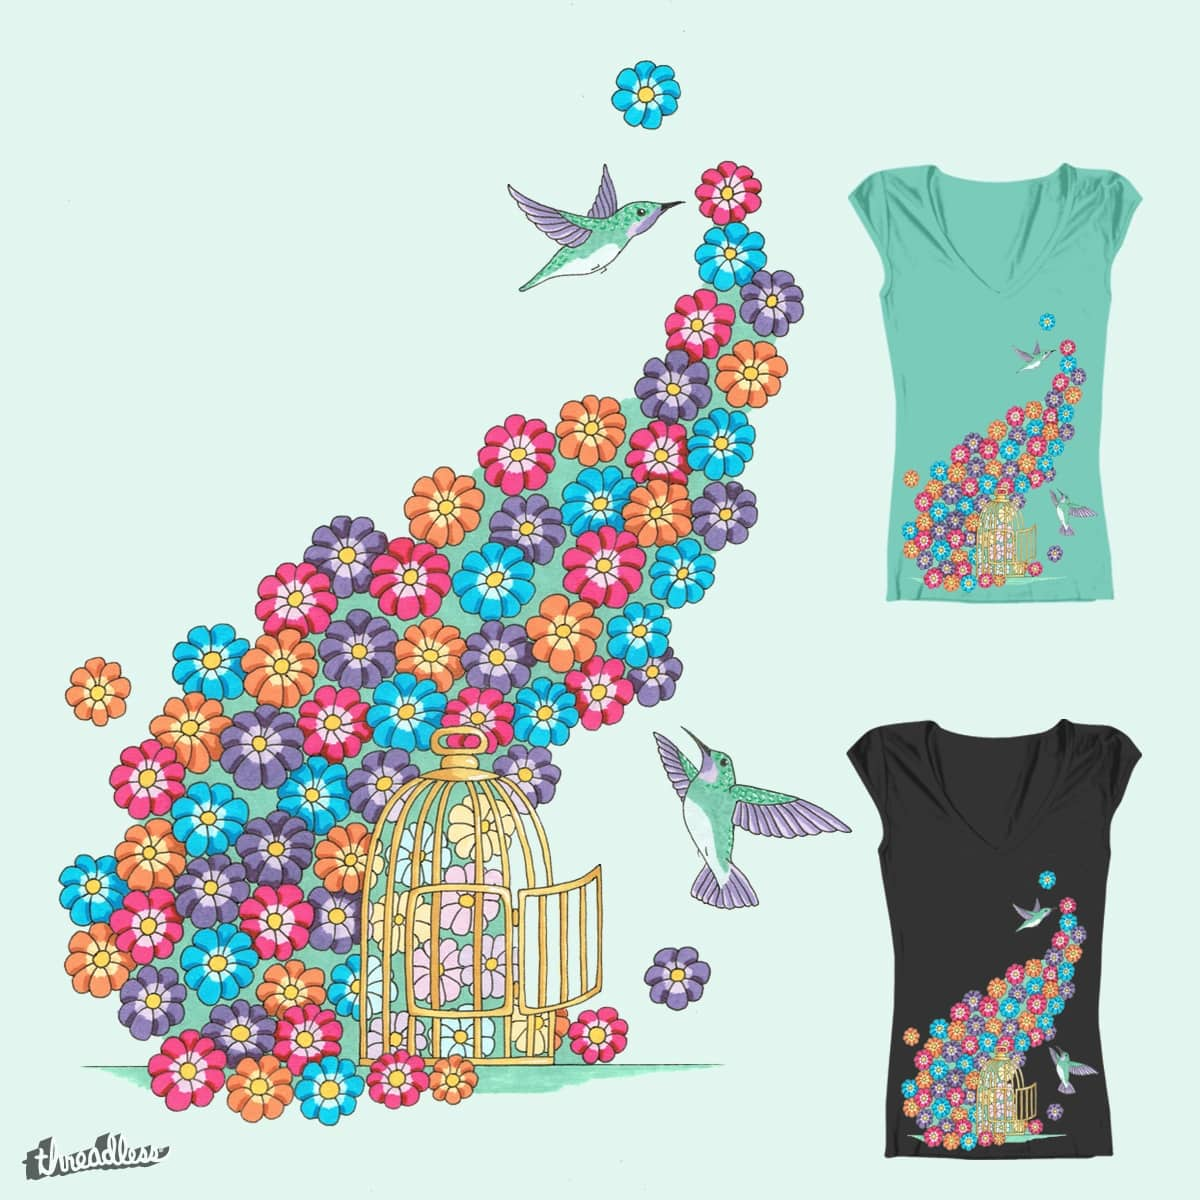 Hummingbirds and flowers by sunny.margaret on Threadless